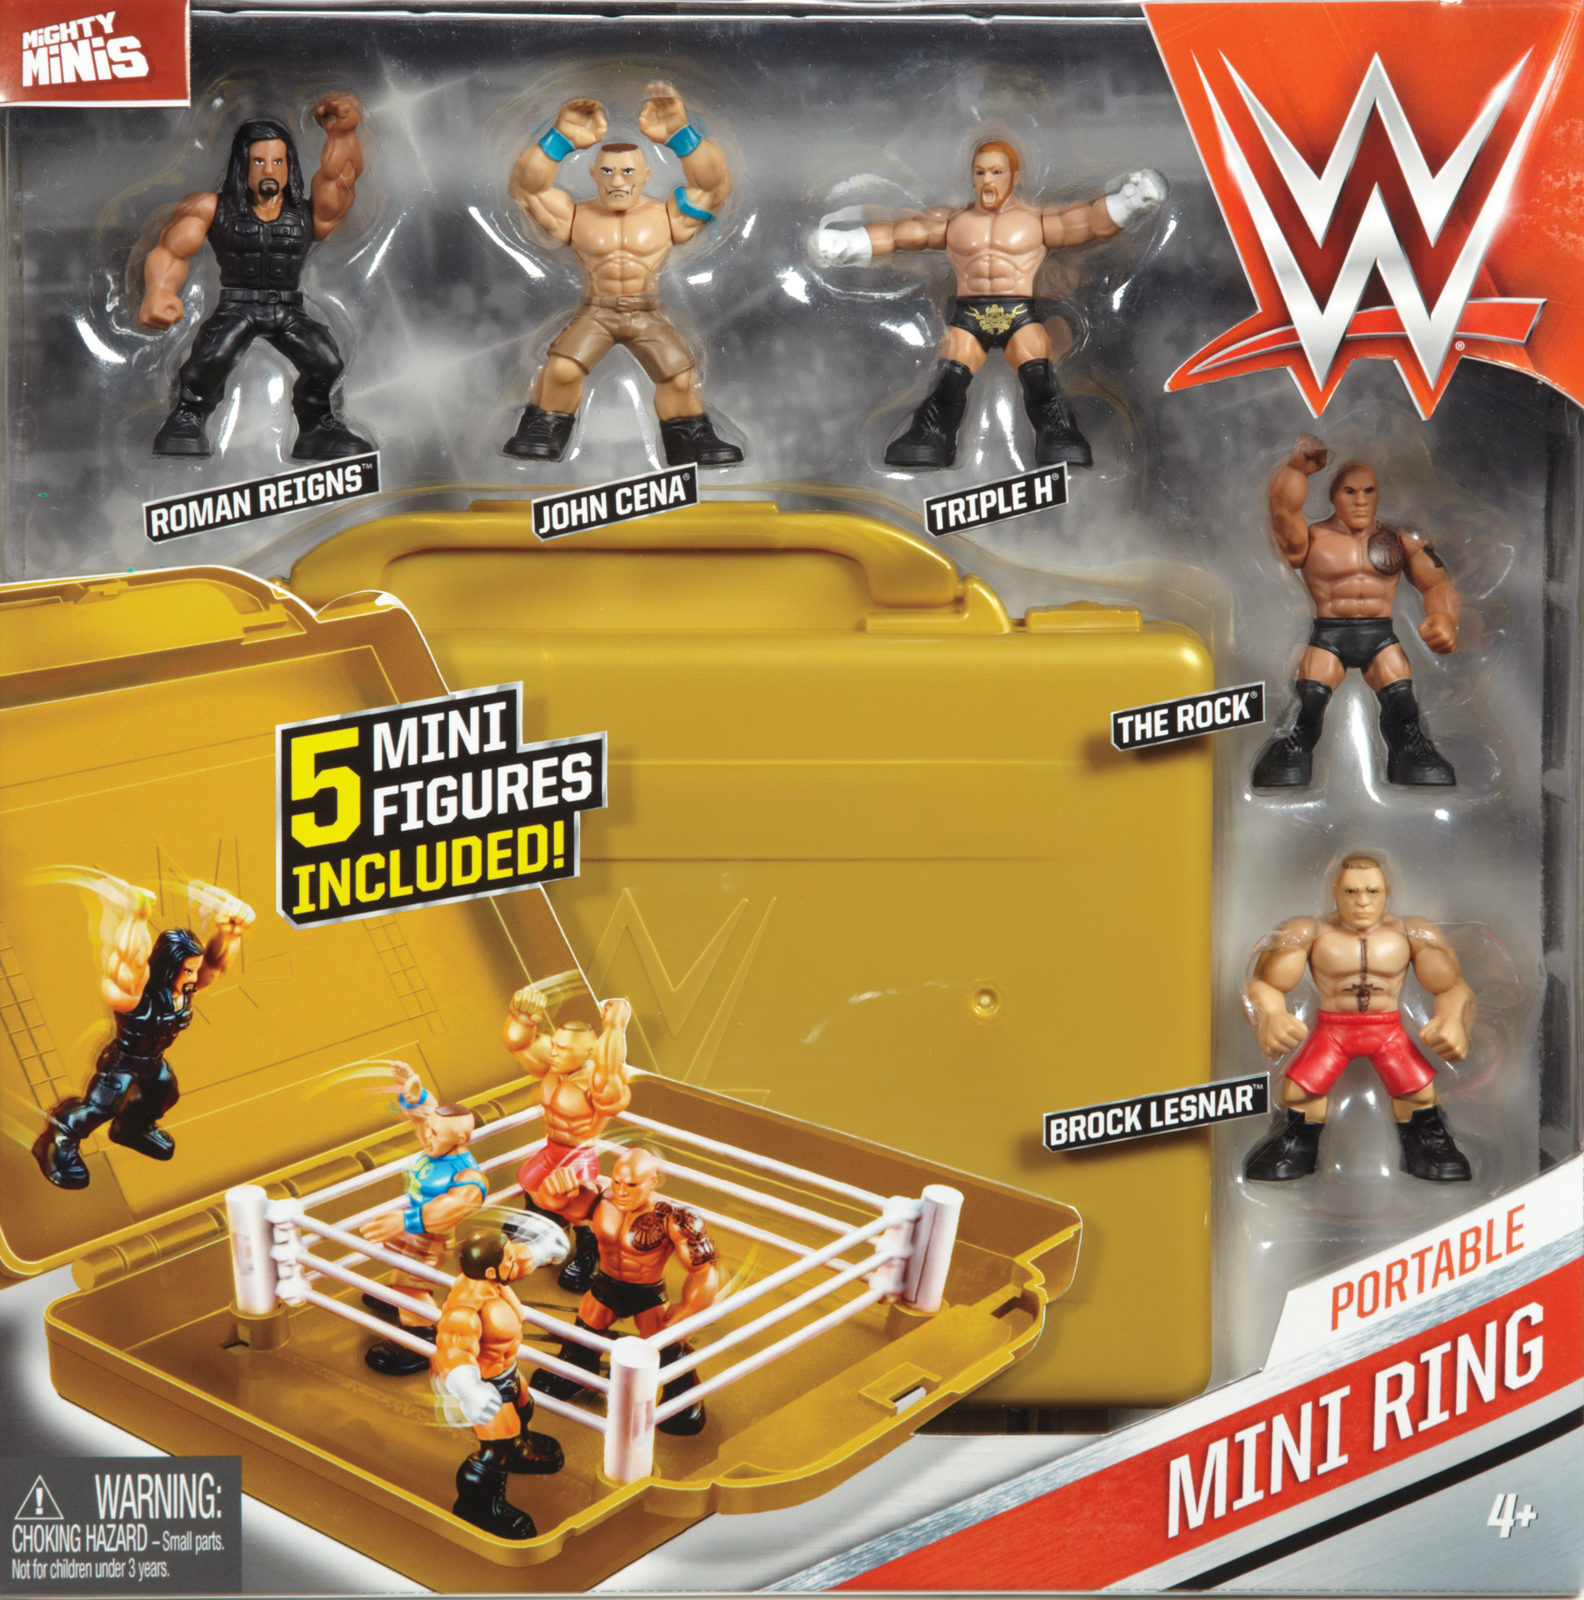 Wwe Mighty Minis Ring Playset W 5 Mini Figures Wwe Toy Wrestling